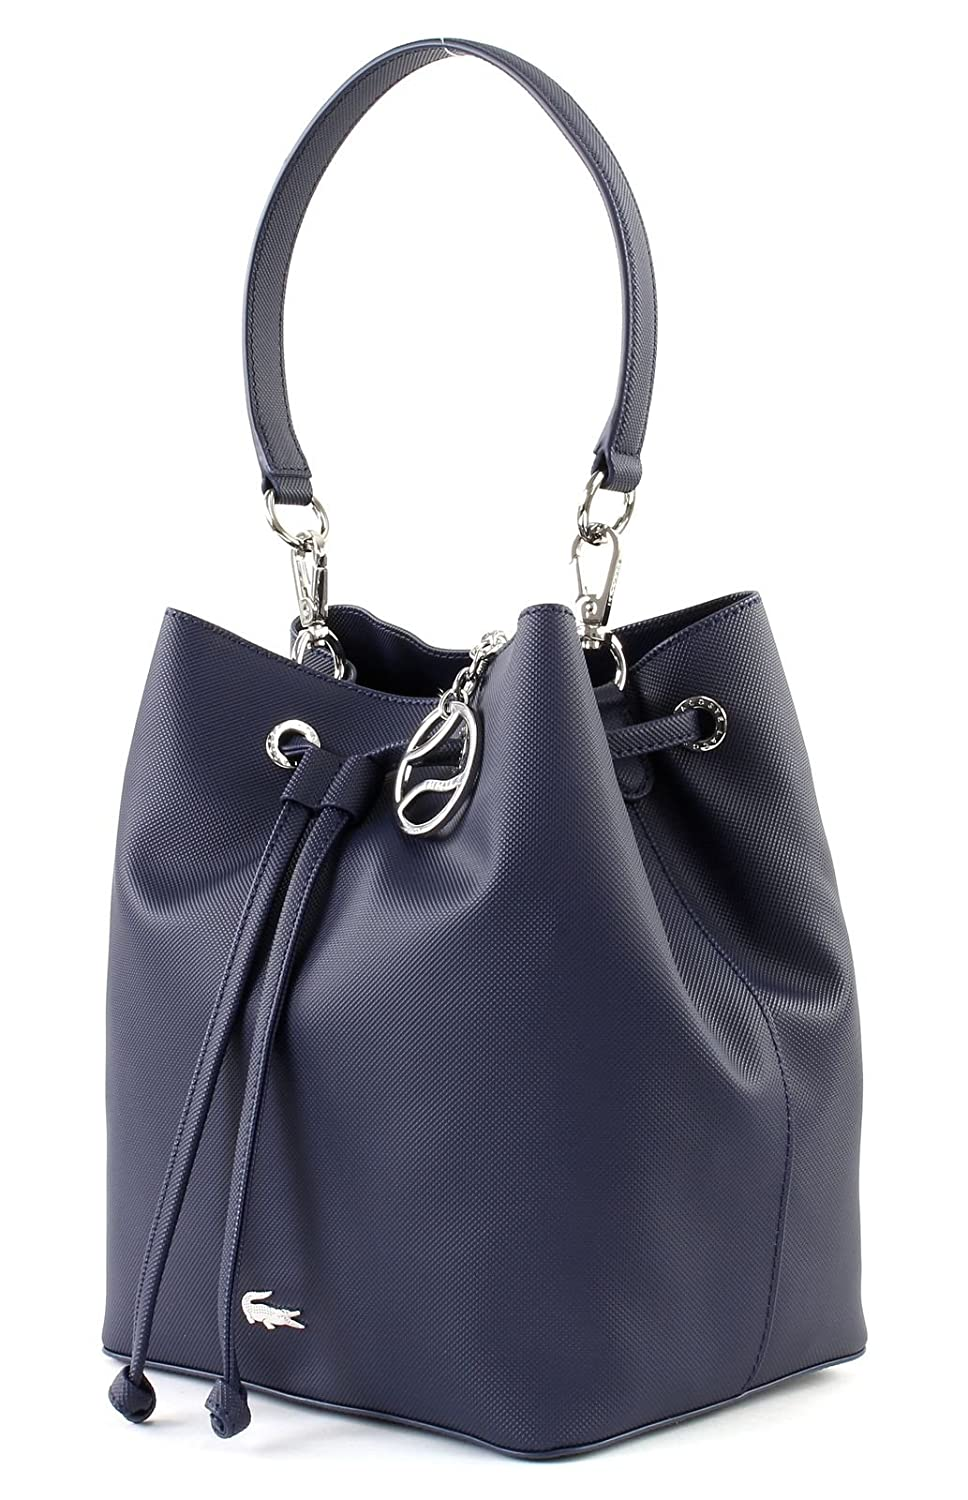 c98bbac49d LACOSTE Daily Classic Bucket Bag Peacoat: Amazon.co.uk: Shoes & Bags